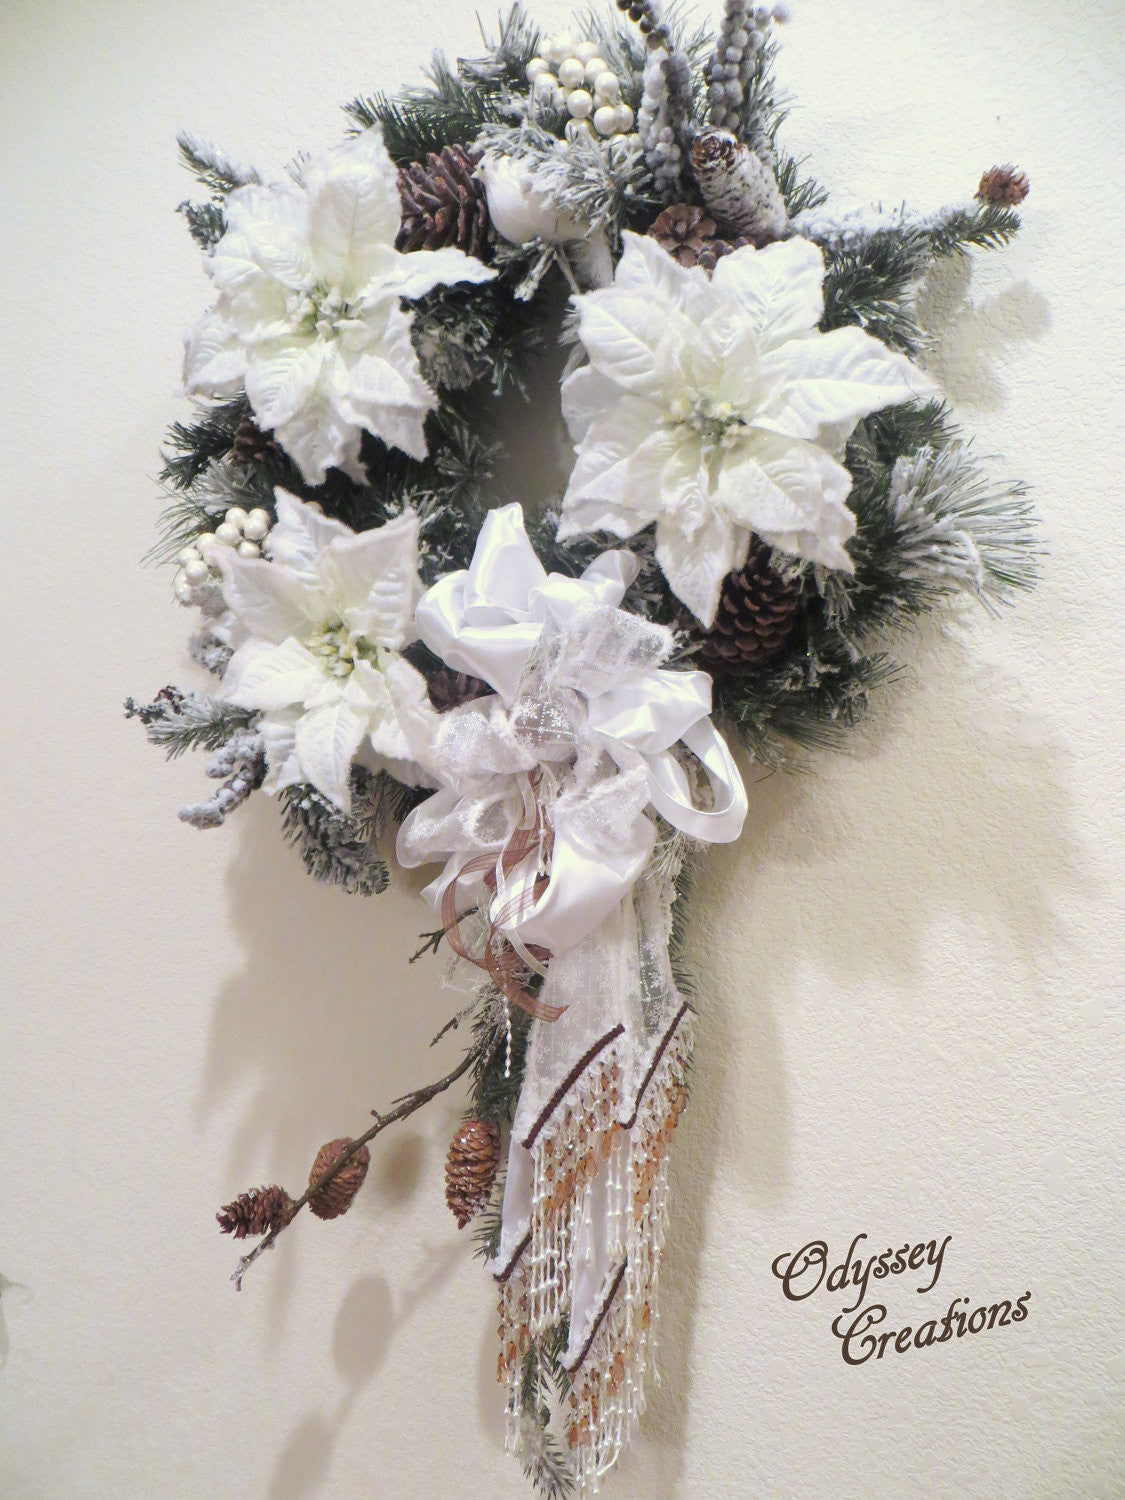 Colorado Inspired Beaded White Victorian Snowy Christmas or Winter Bridal Wreath - Odyssey Creations